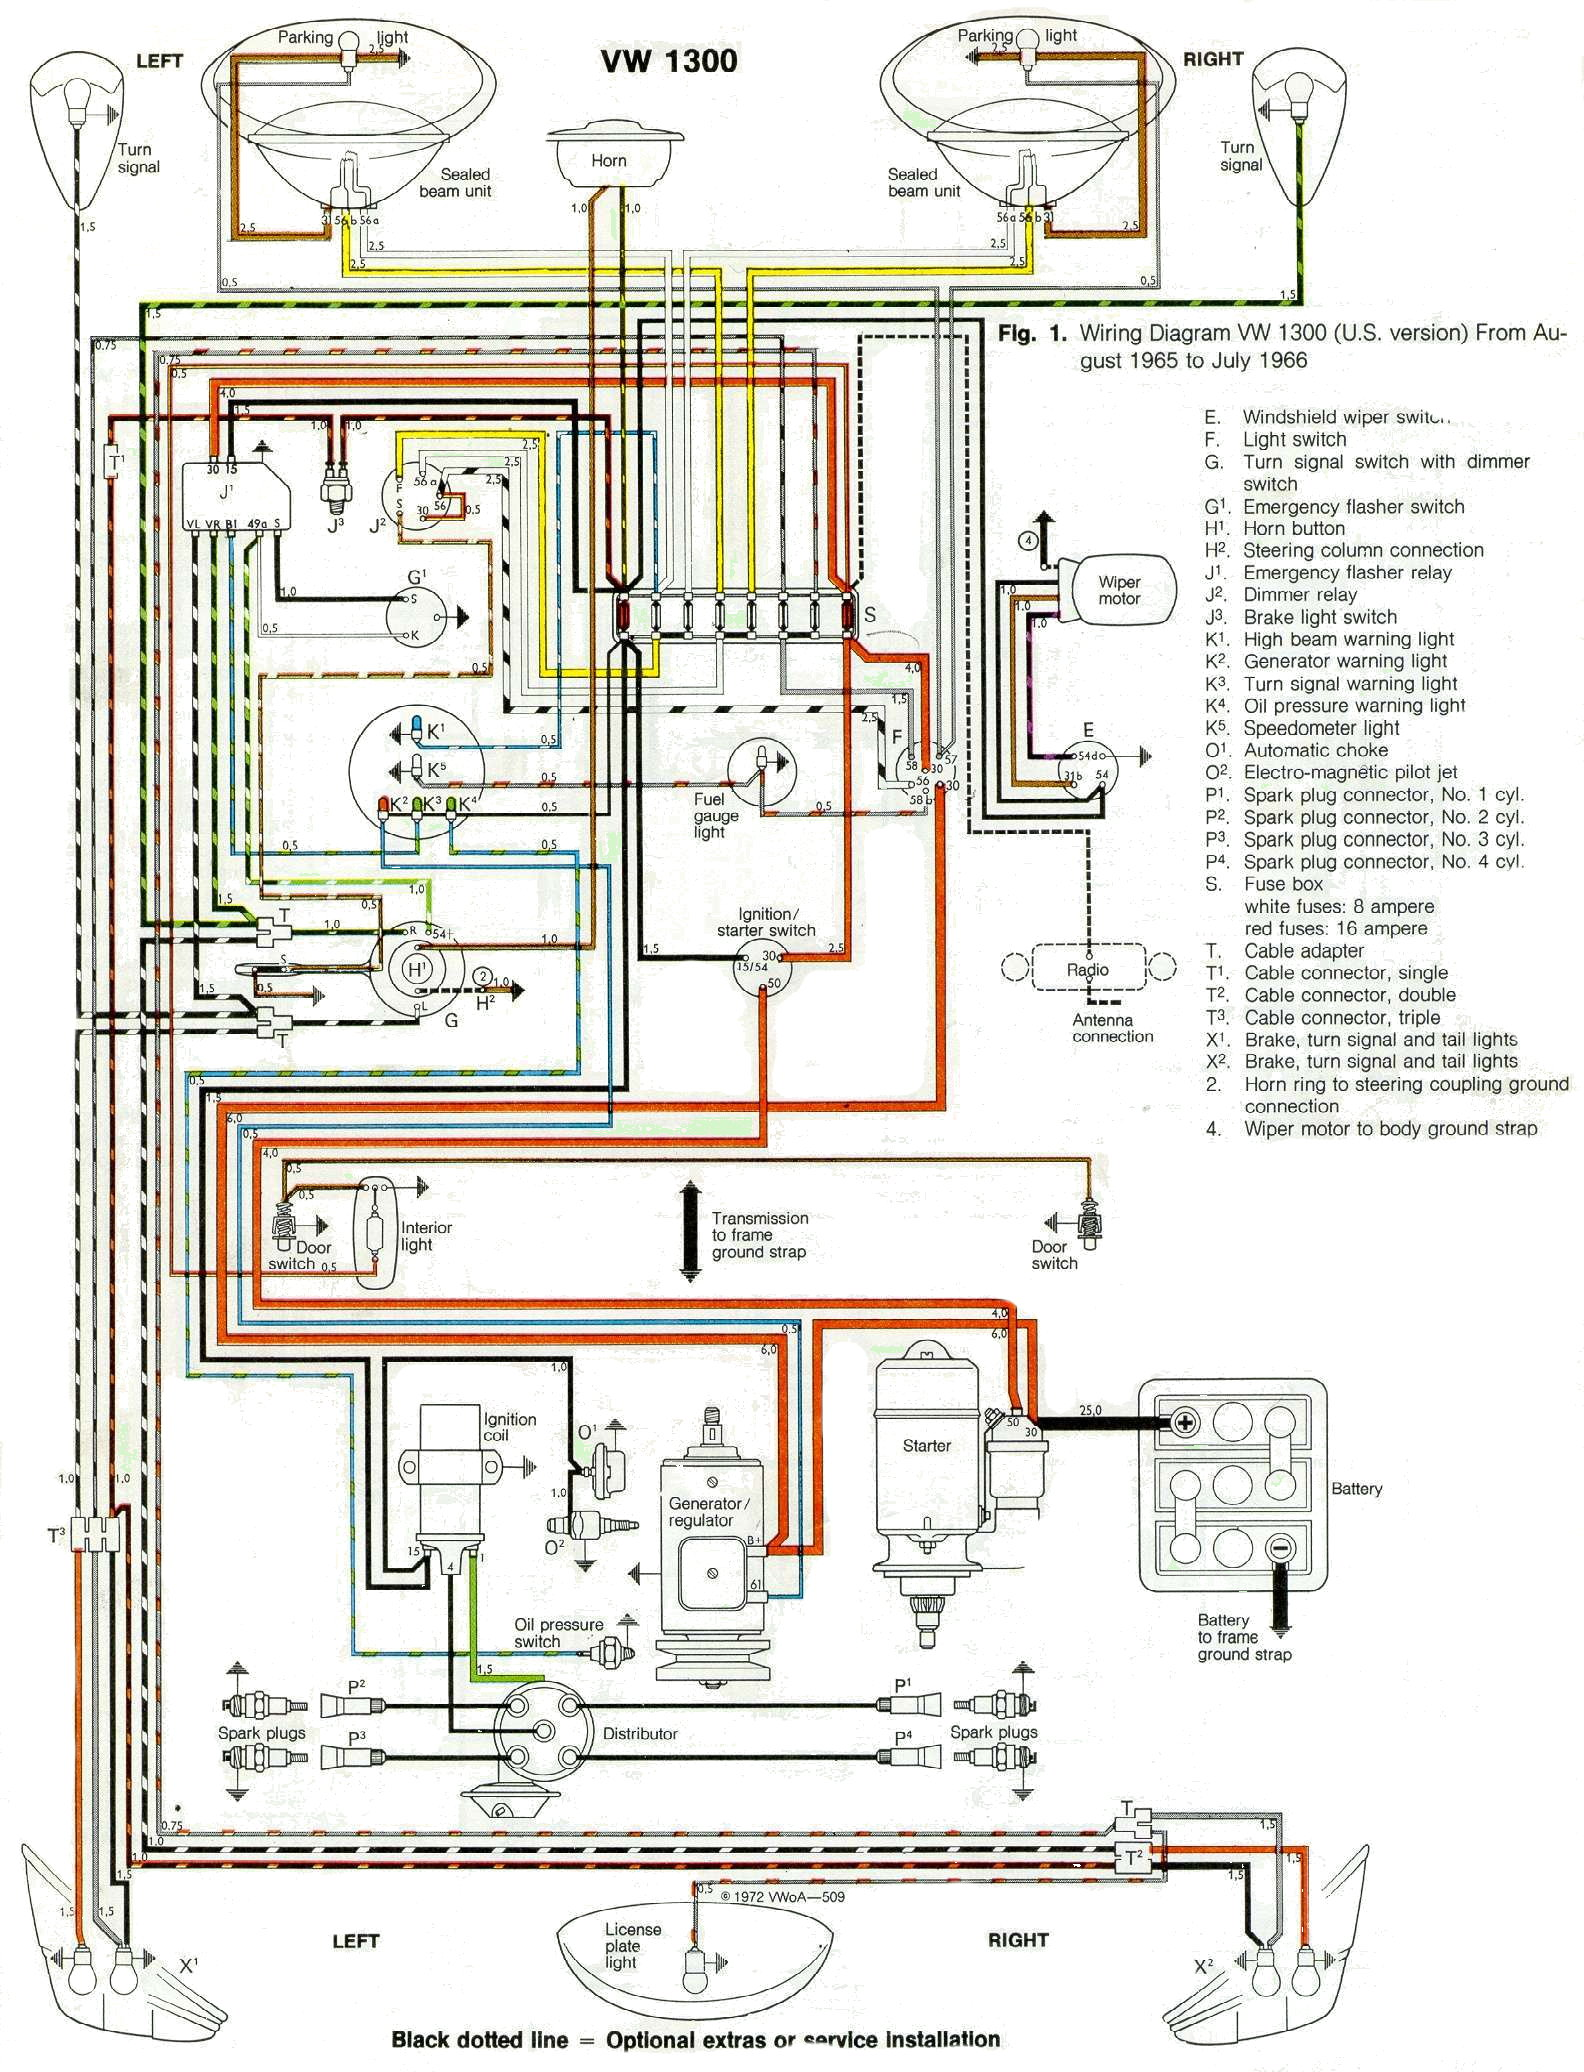 1966 Wiring 1966 wiring diagram vw wiring diagrams at cita.asia